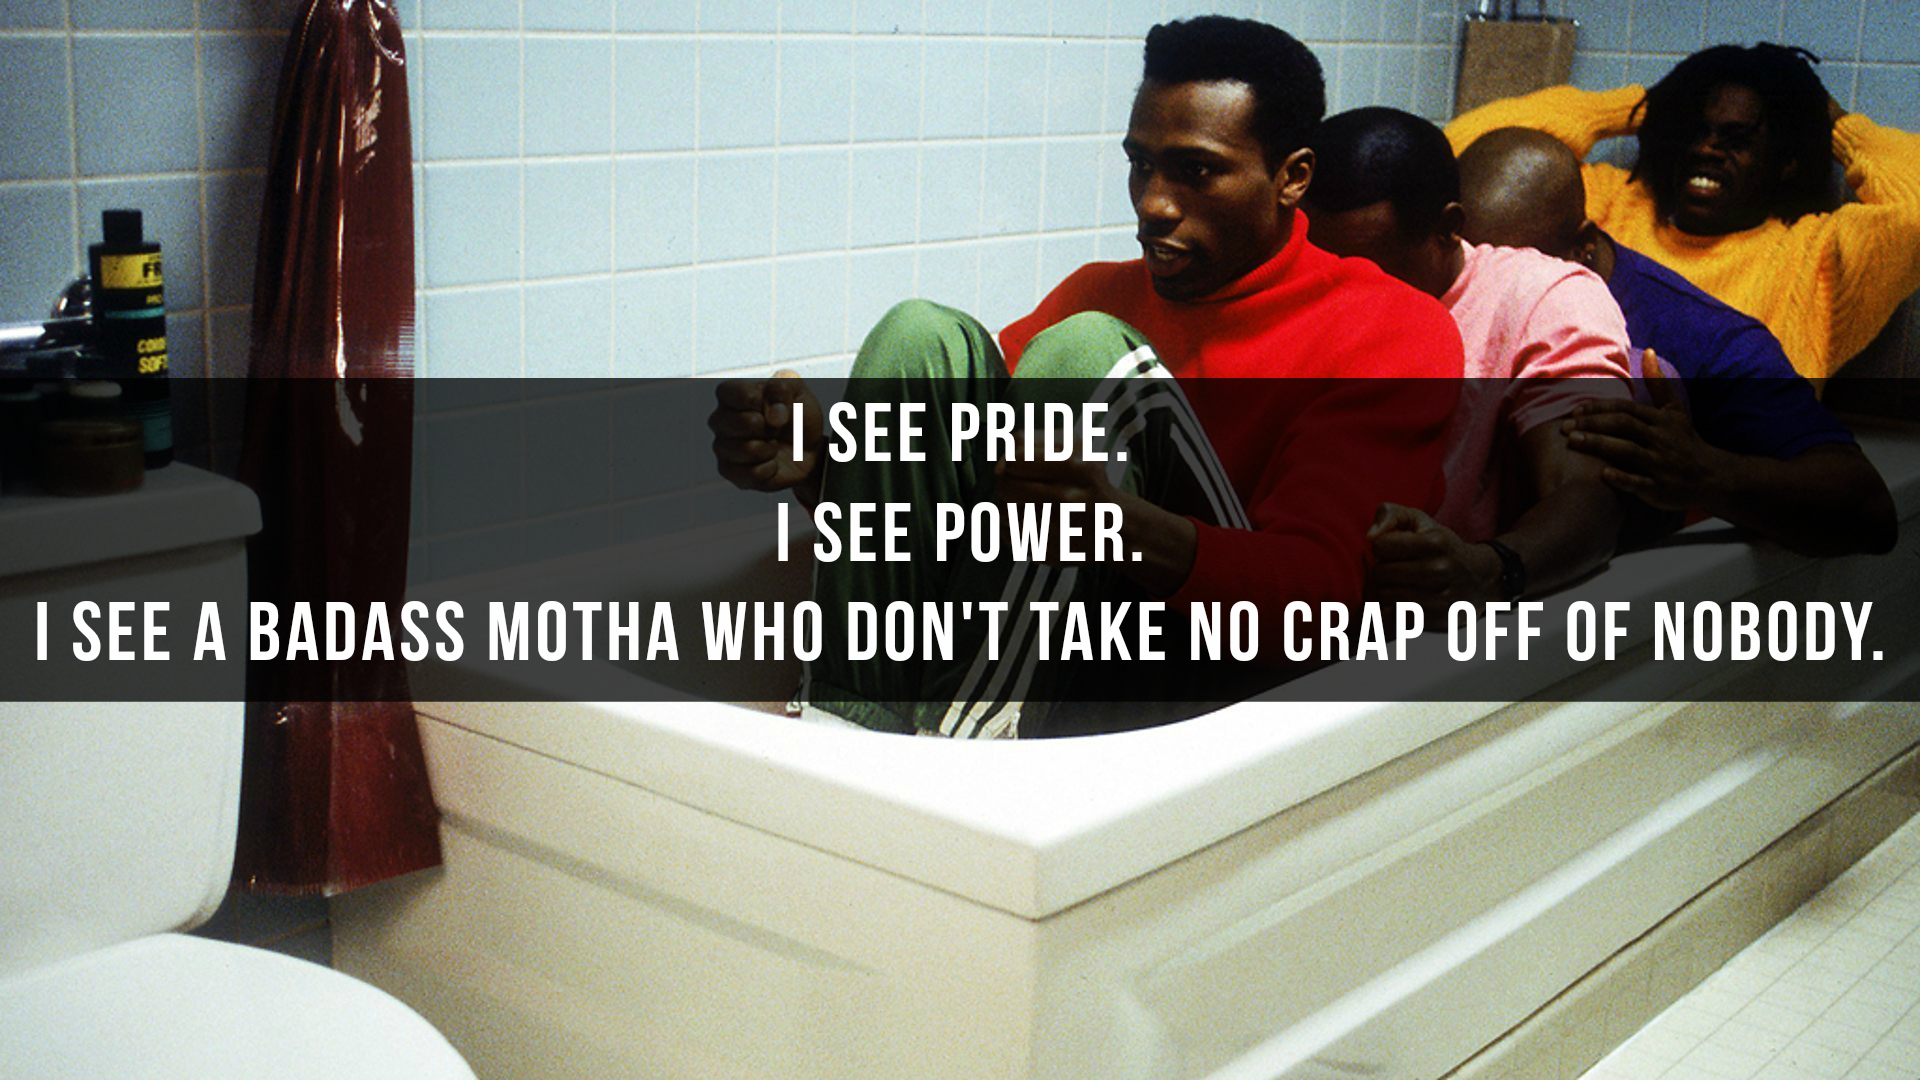 [Image] Cool Runnings still motivates me and it's been 24 years